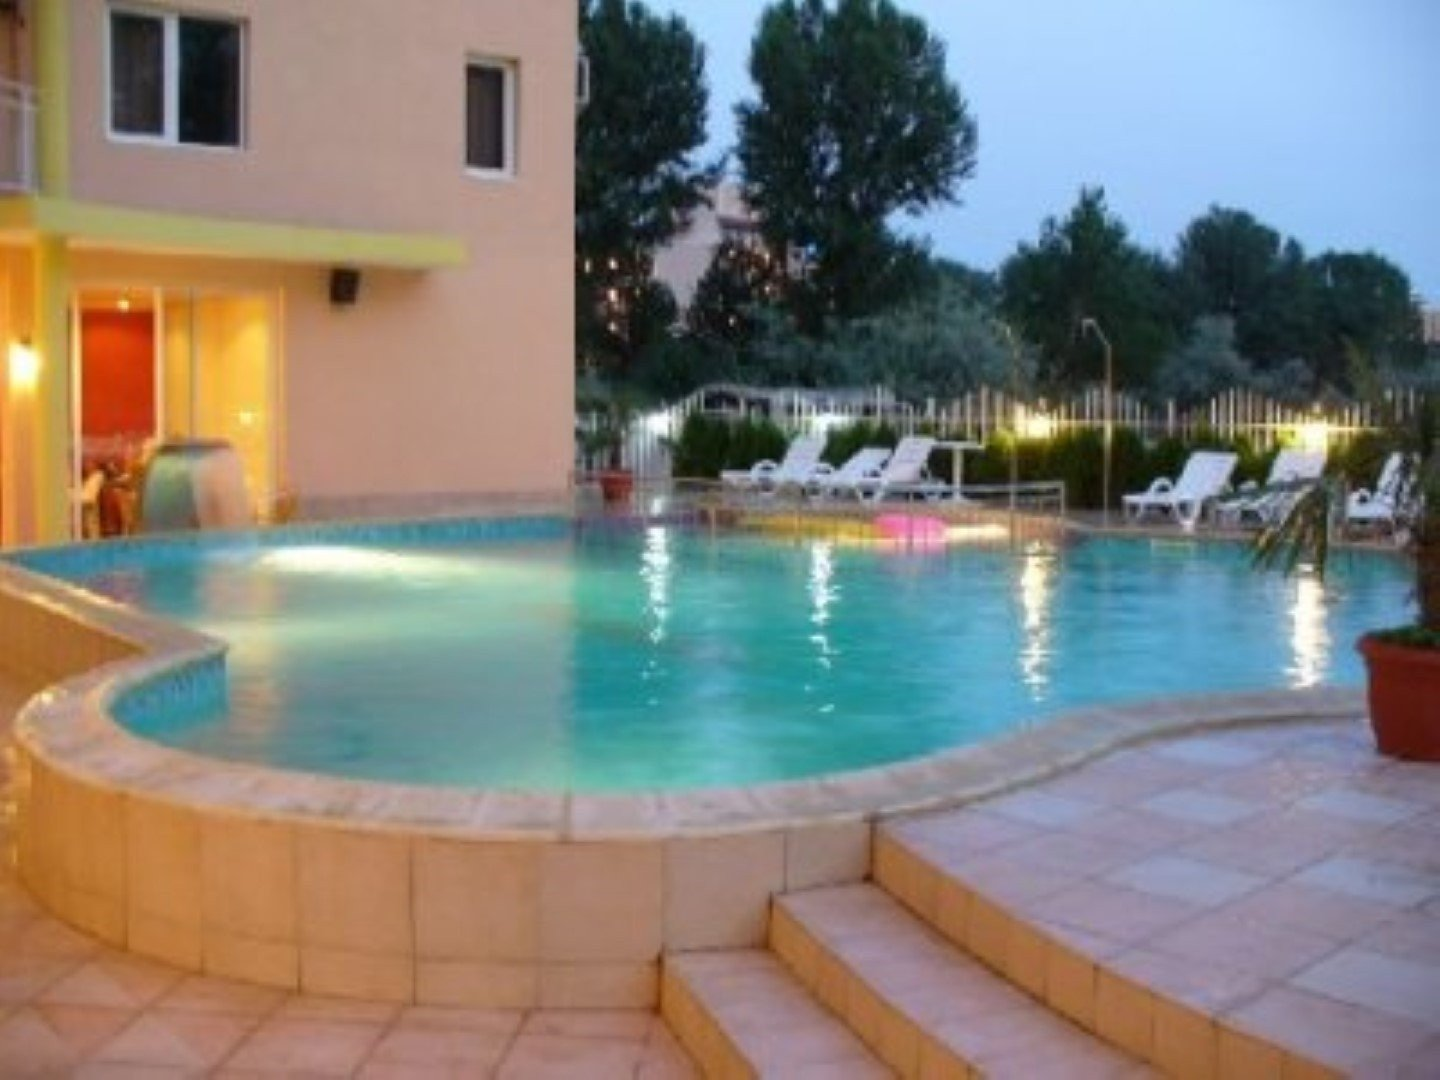 Sale property abroad Apartment in Bahami - Sunny Beach